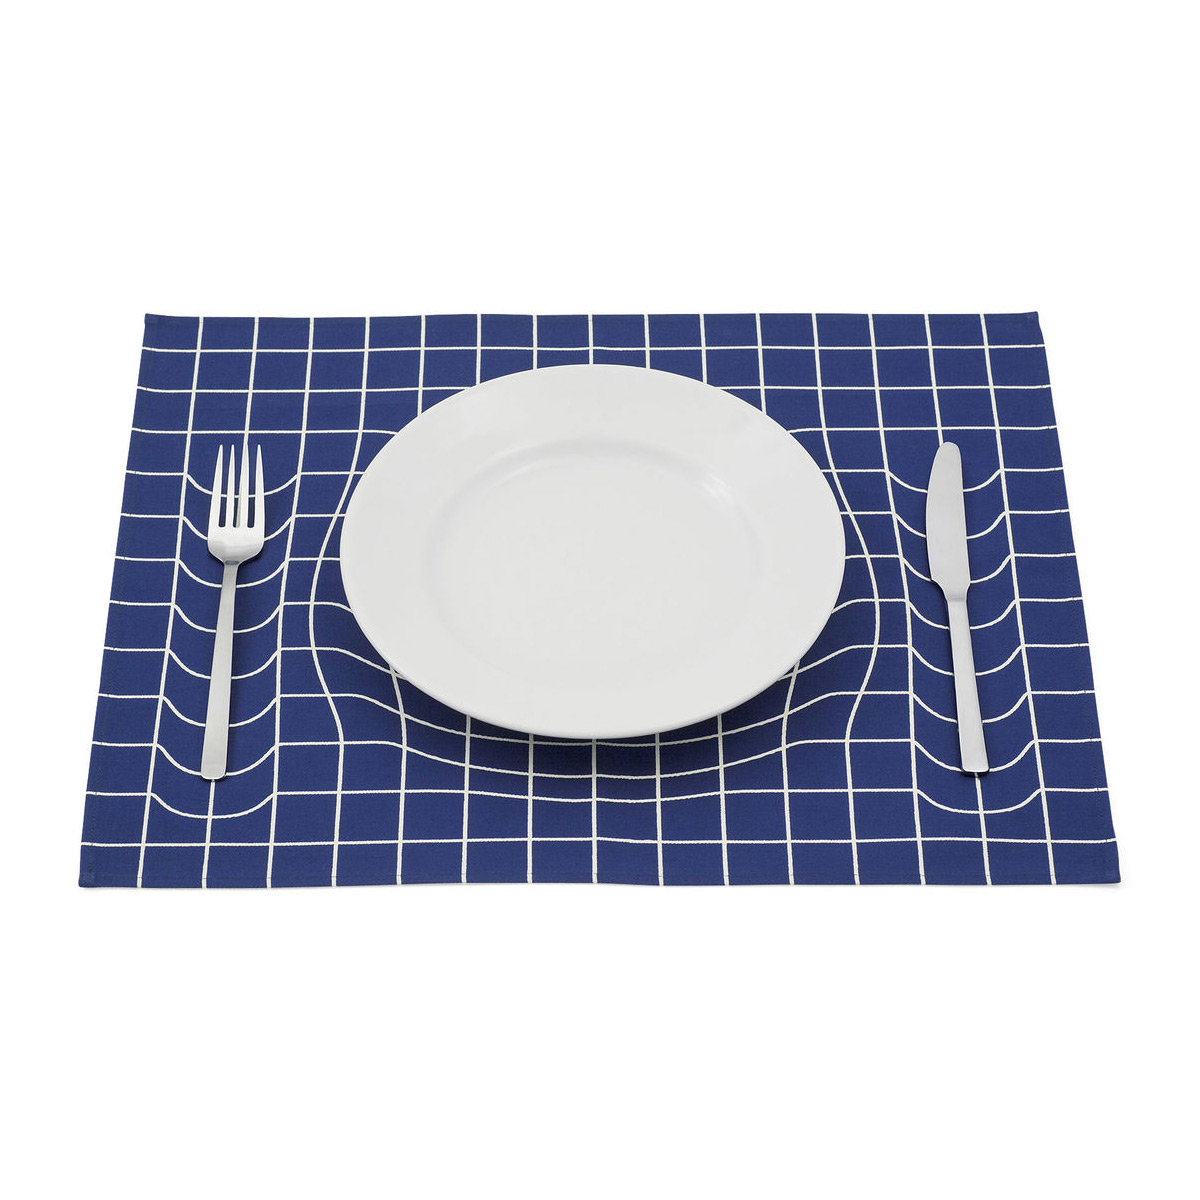 Optical Illusion Trick Placemat